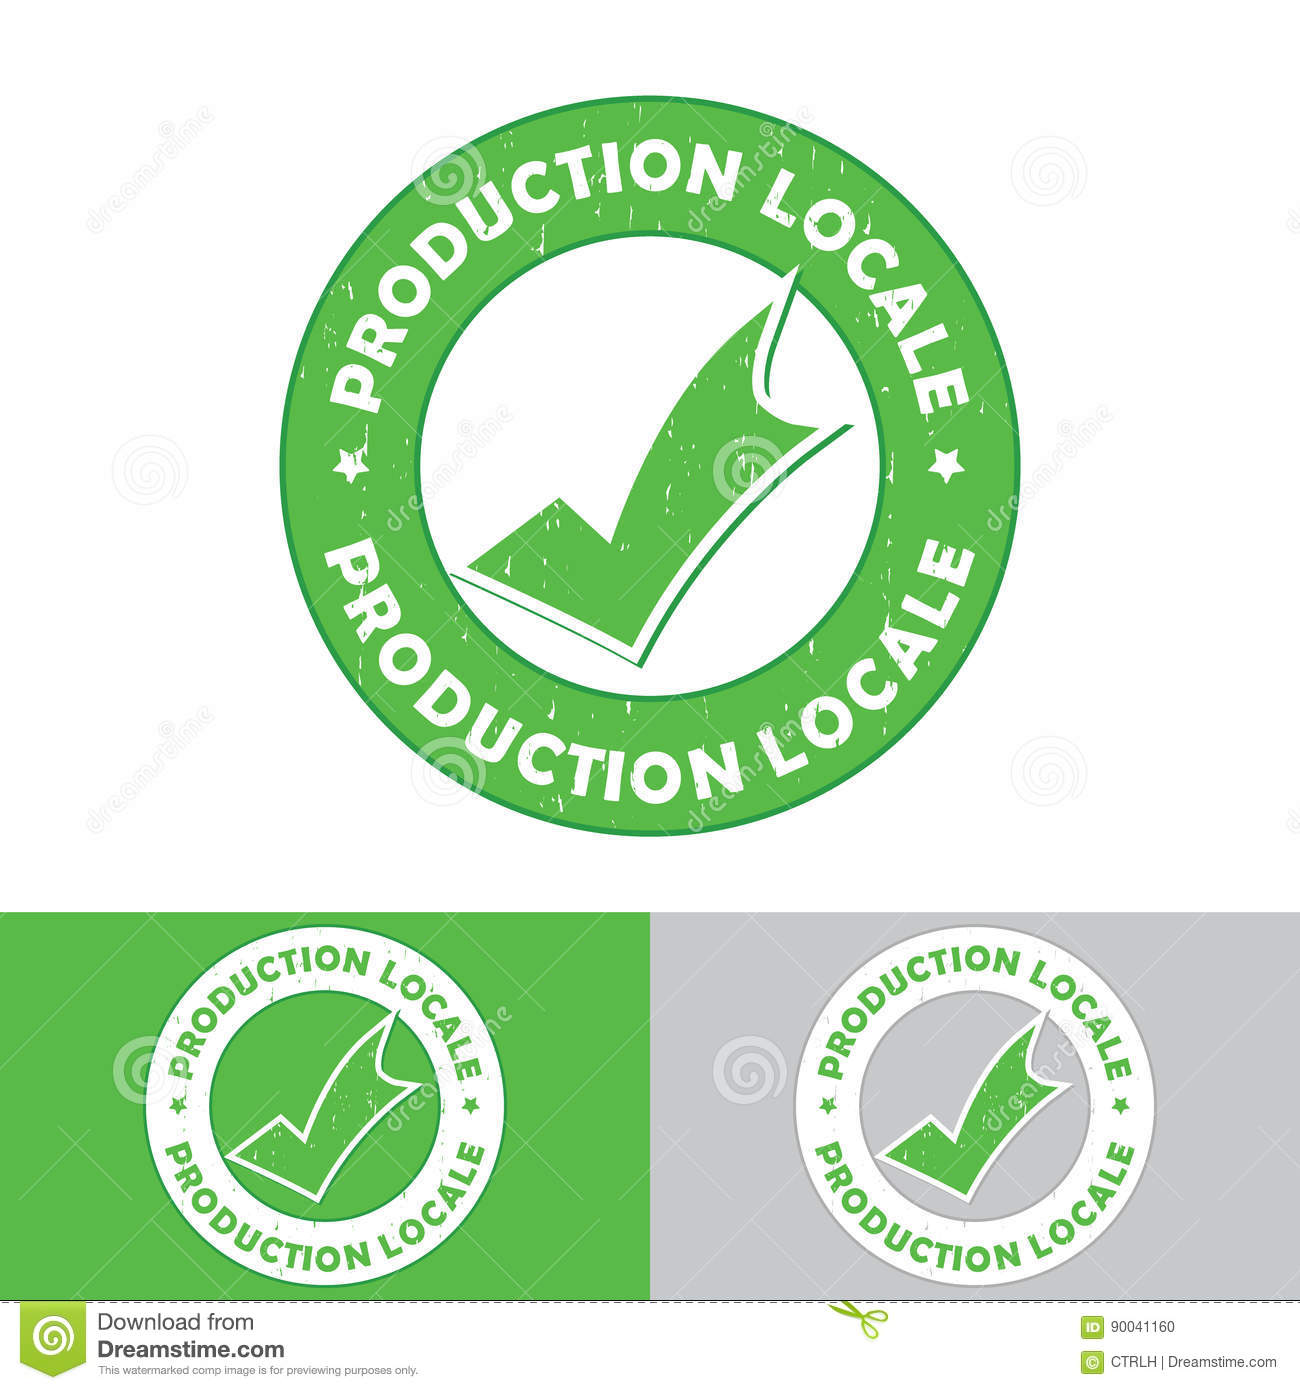 Production Locale French Language: Locally Product Stock